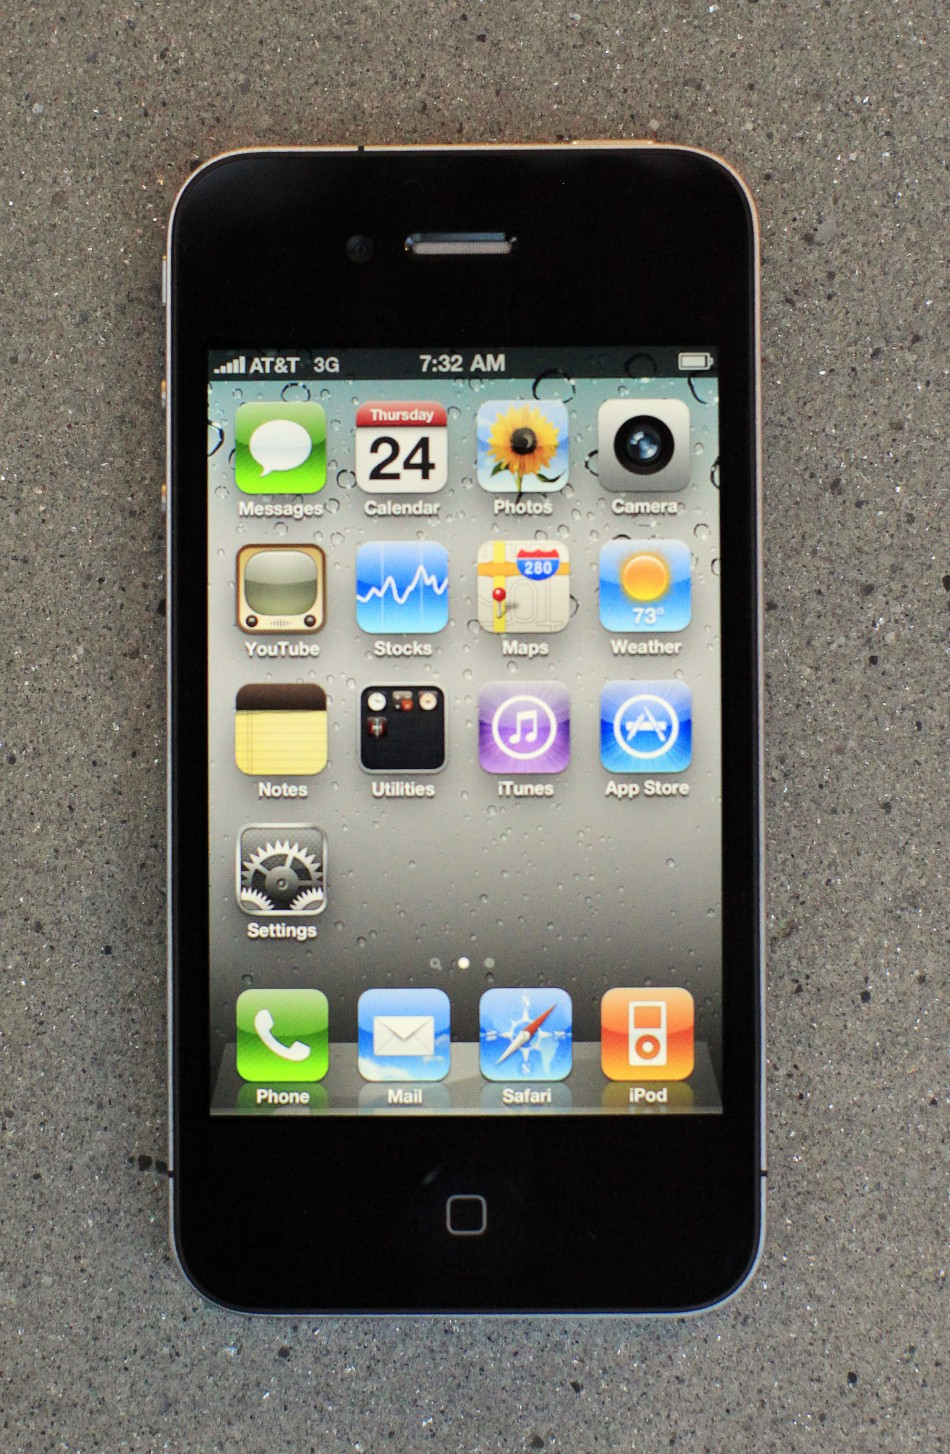 ios 5 1 1 untethered jailbreak how to unlock iphone 4 3gs using ultrasn0w 1 2 7 tutorial. Black Bedroom Furniture Sets. Home Design Ideas